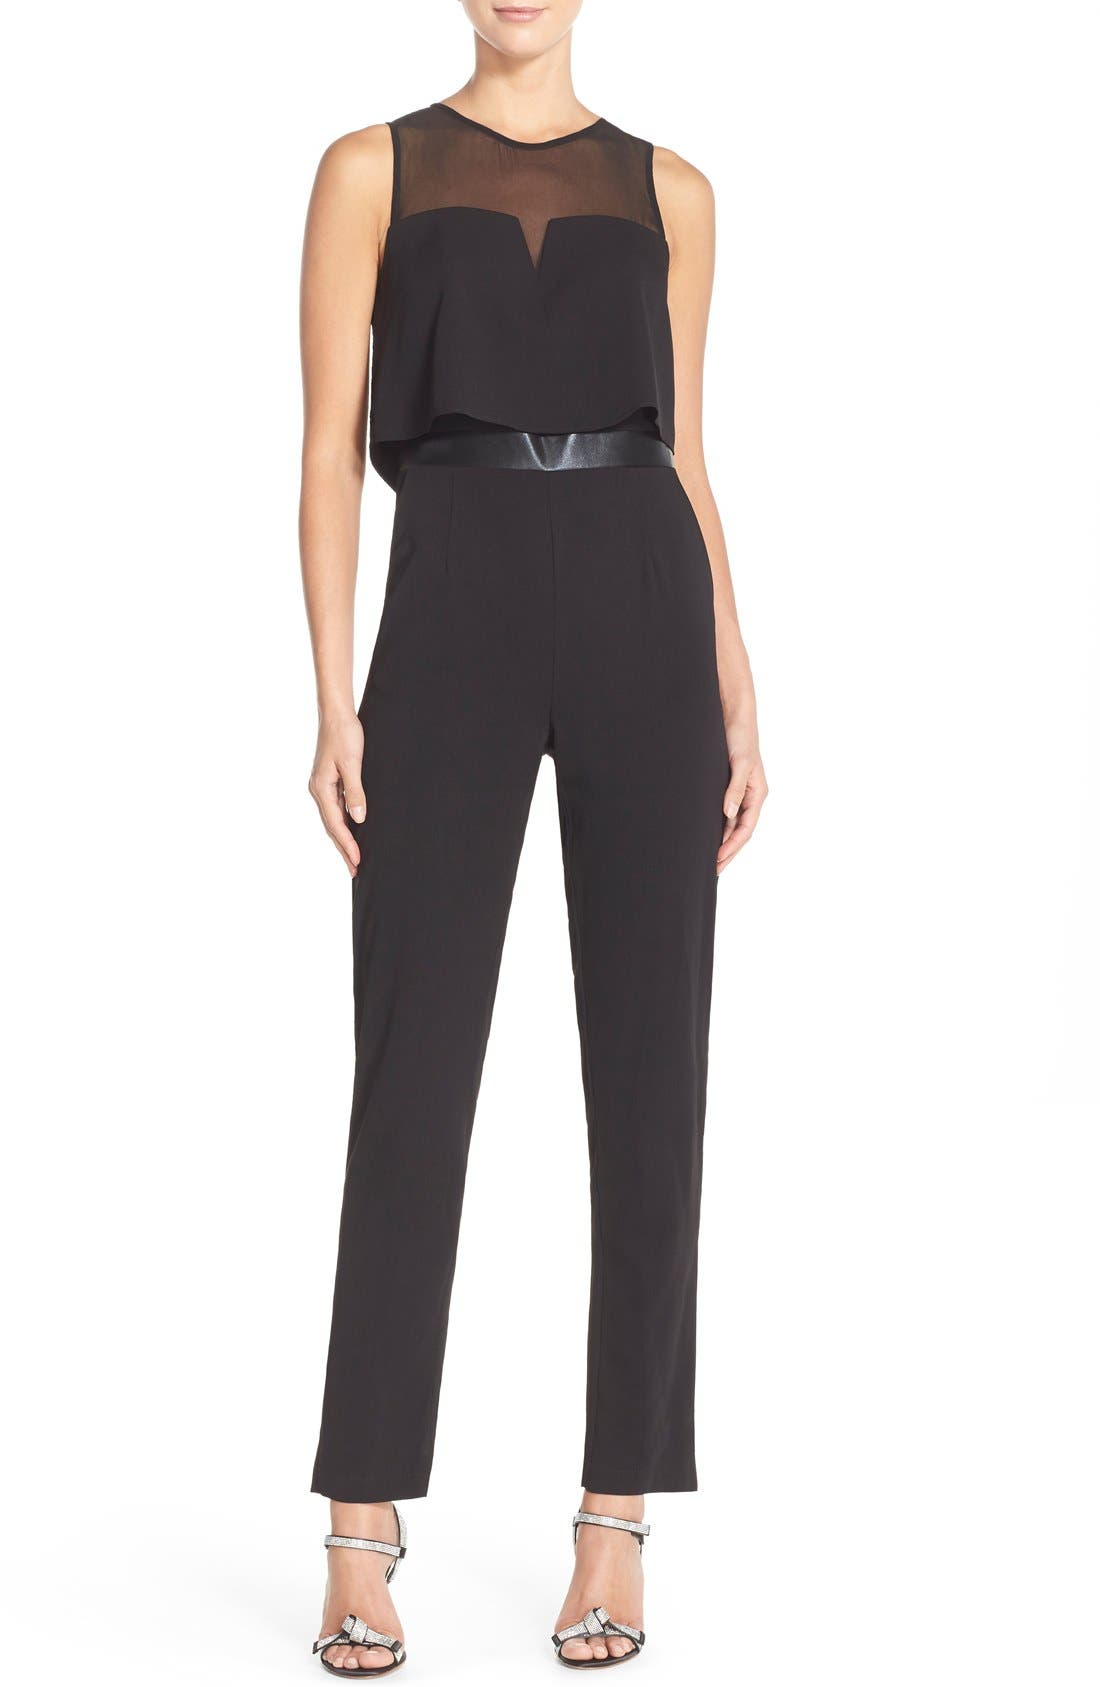 Popover Mixed Media Jumpsuit,                             Main thumbnail 1, color,                             001